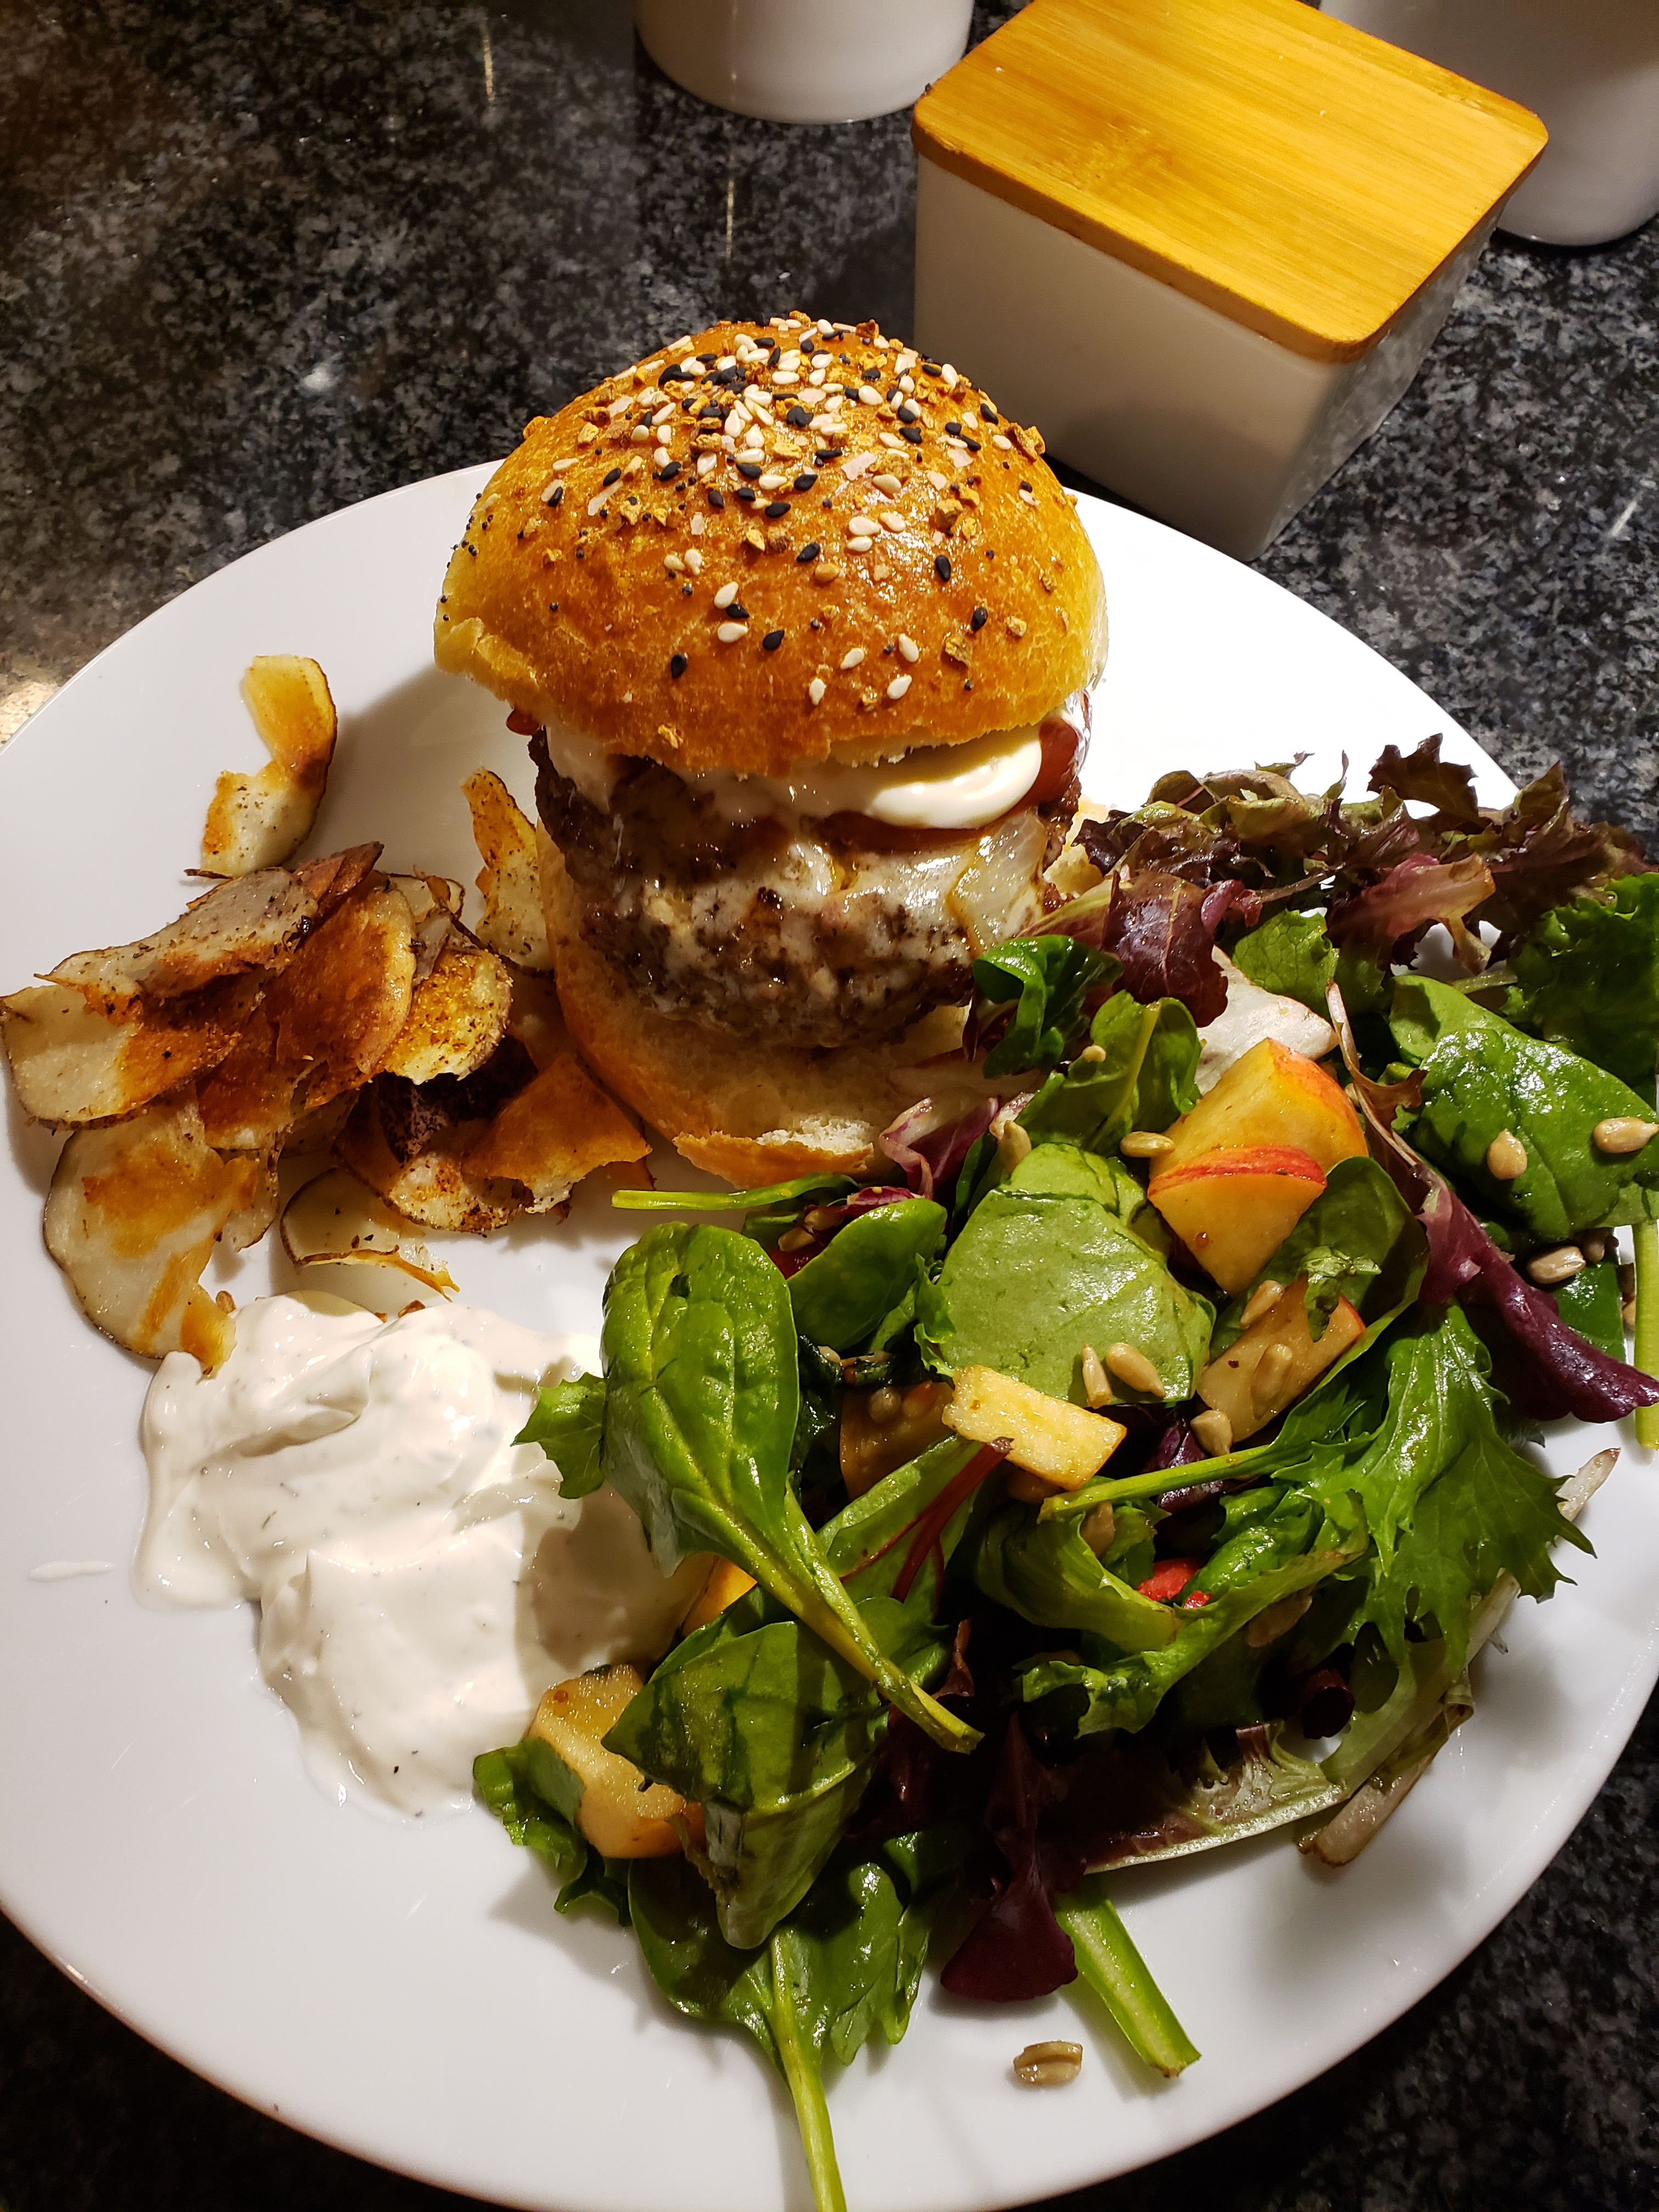 Burger with potatoes and salad